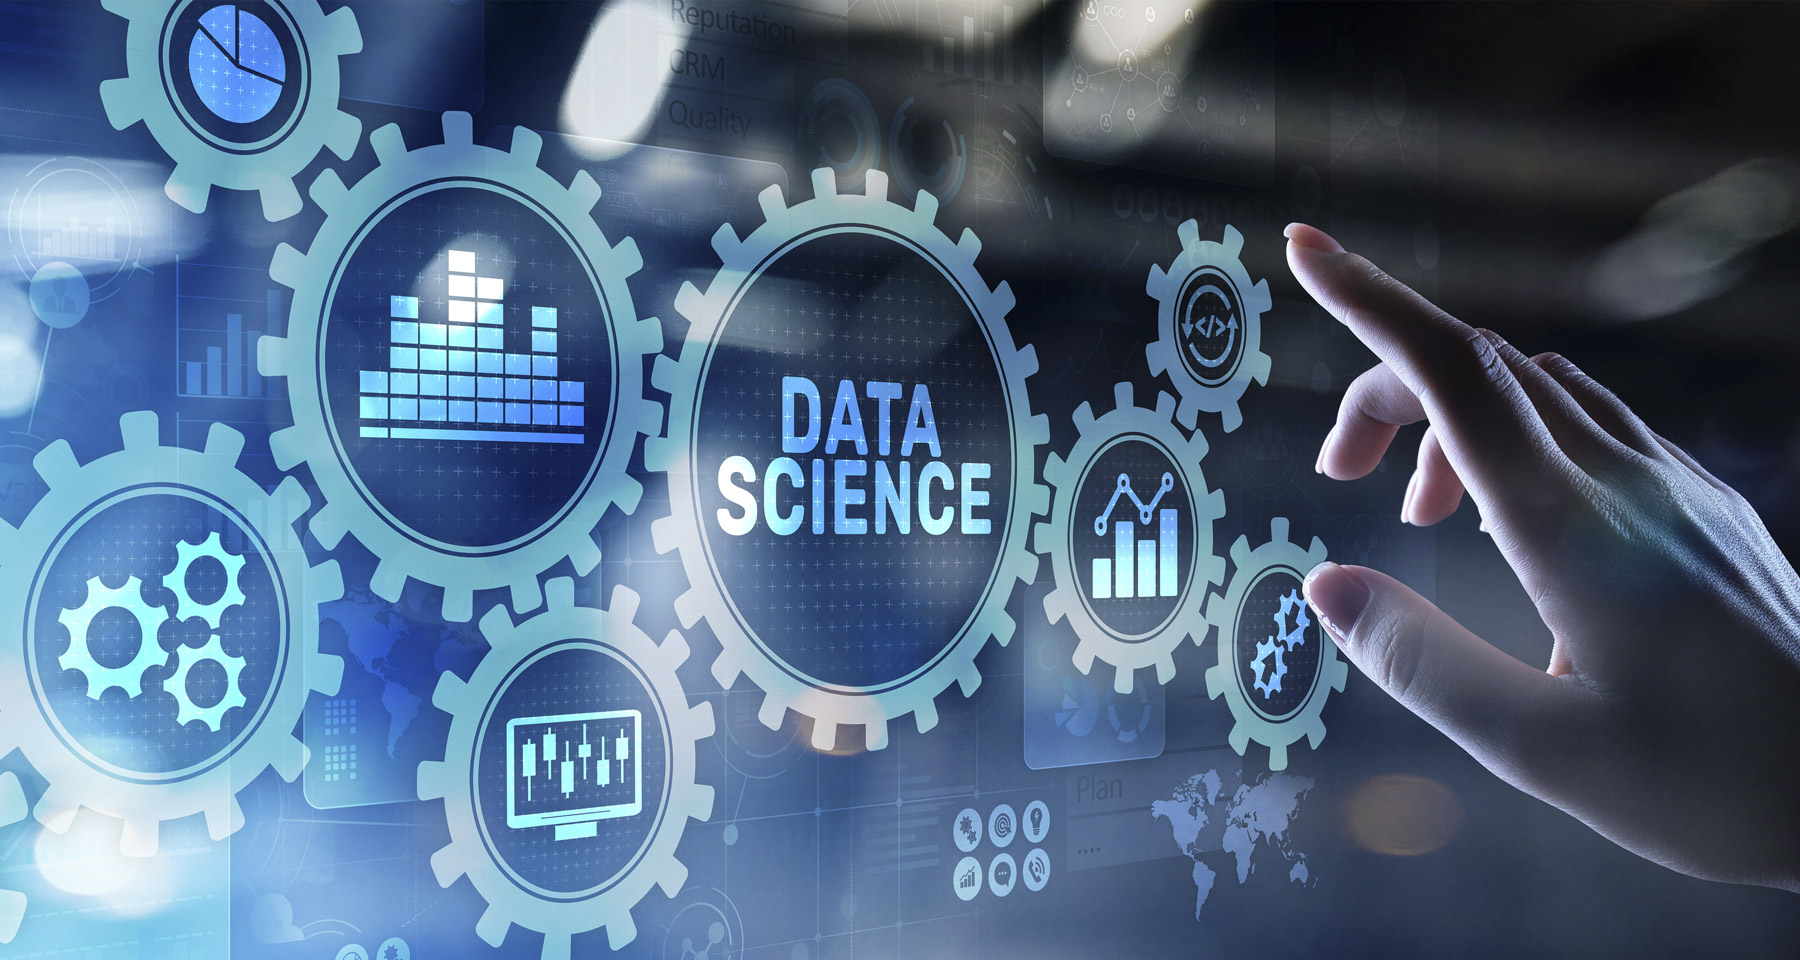 Regional German publishers share costs of data science to drive reader revenue